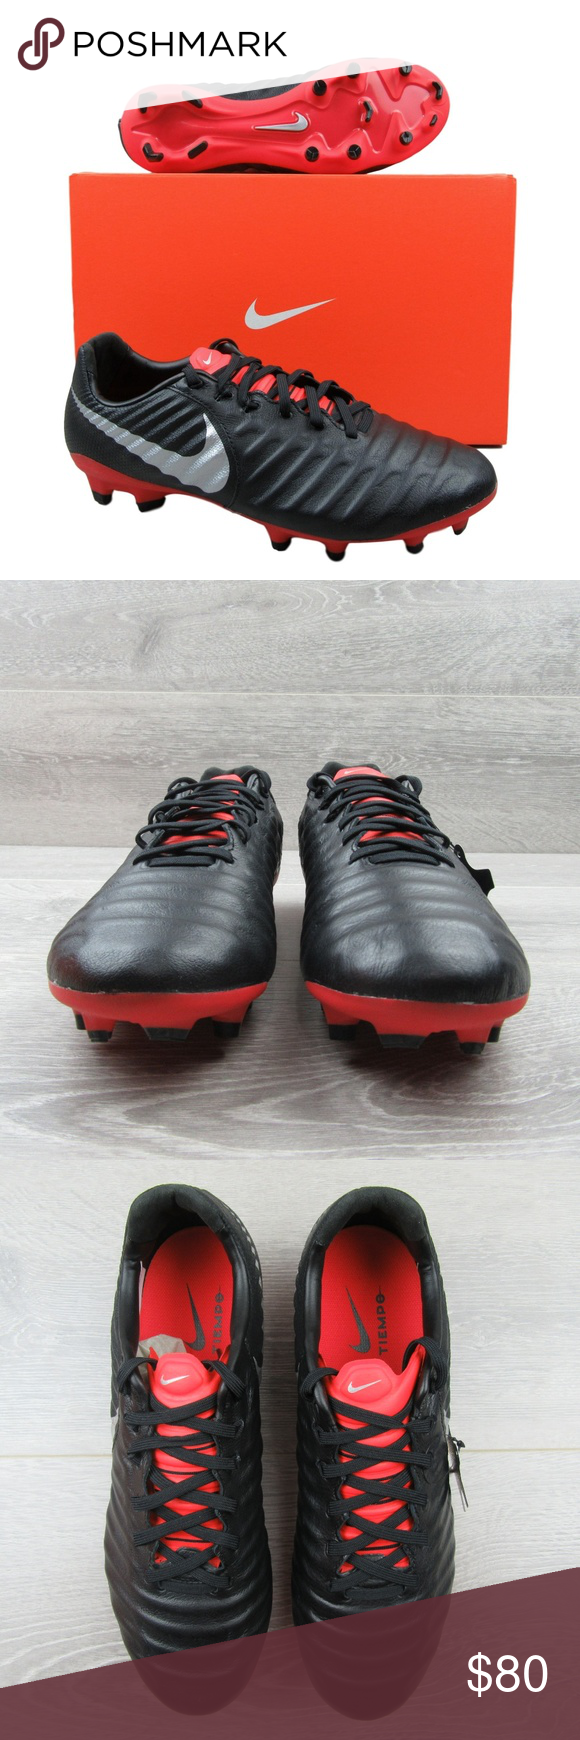 Nike Tiempo Legend 7 Pro Fg Soccer Cleats Soccer Cleats Black Nikes Nike